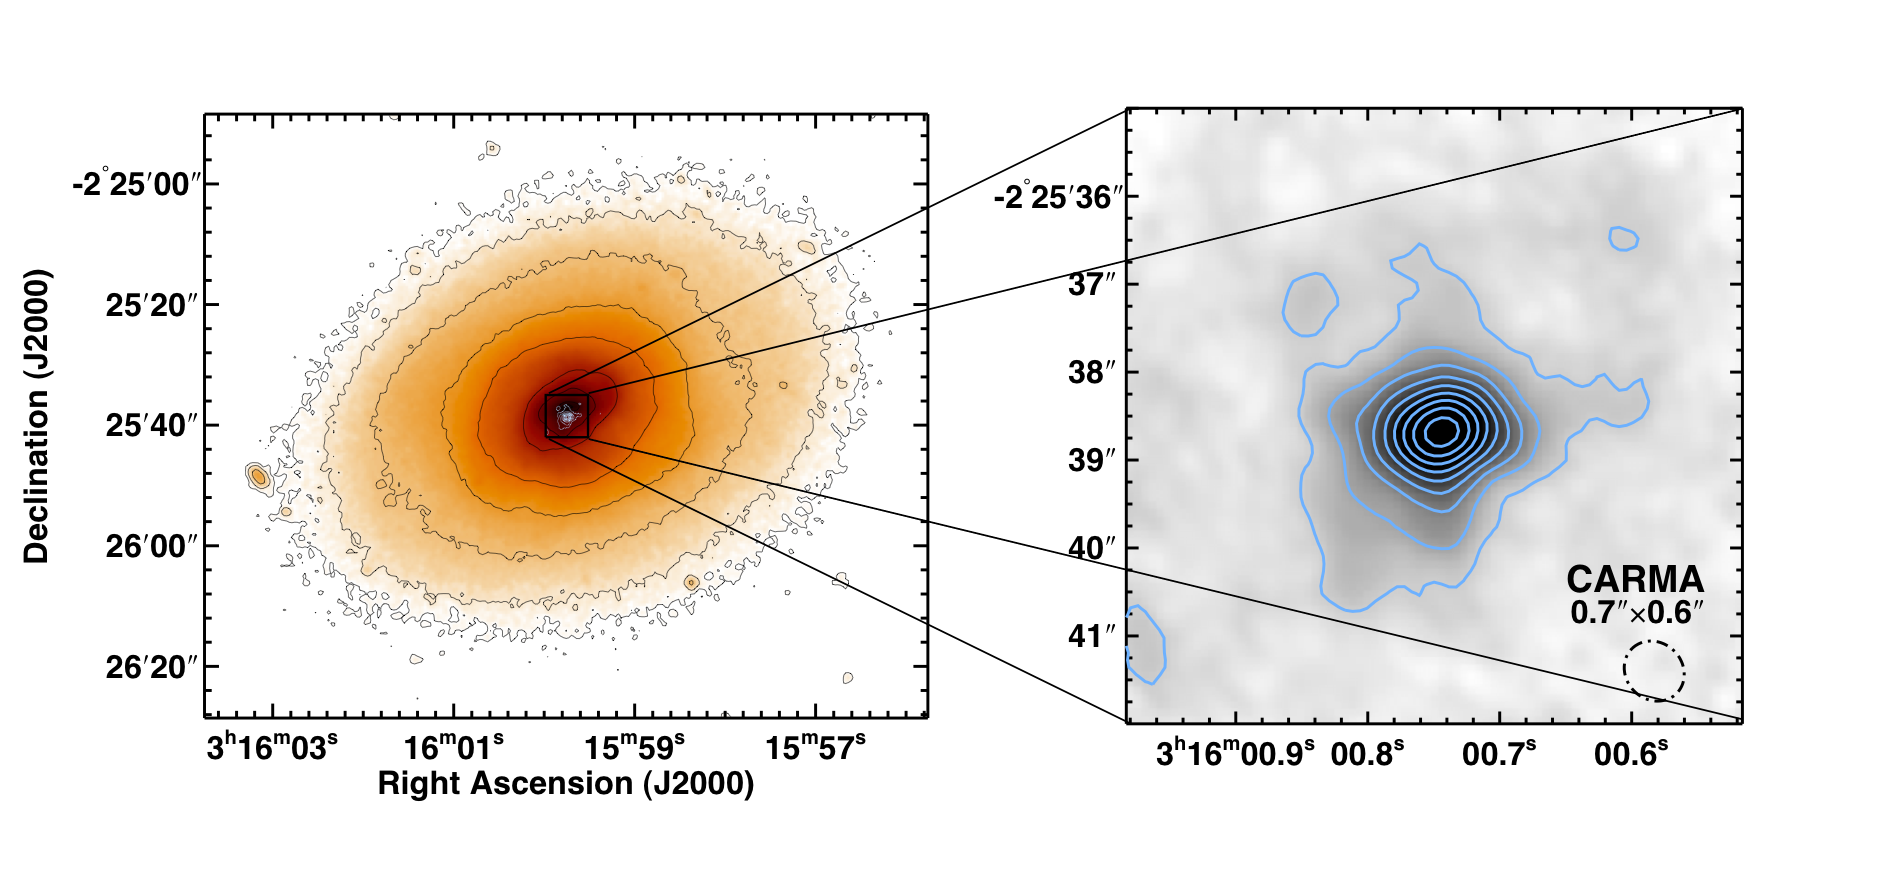 On the left, the molecular line observations are superposed on an r-band image of the galaxy from the SINGS survey.  A zoom-in on the molecular emission from the nucleus of the galaxy is presented on the right.  The molecular emission is sharply concentrated toward the center of the galaxy.